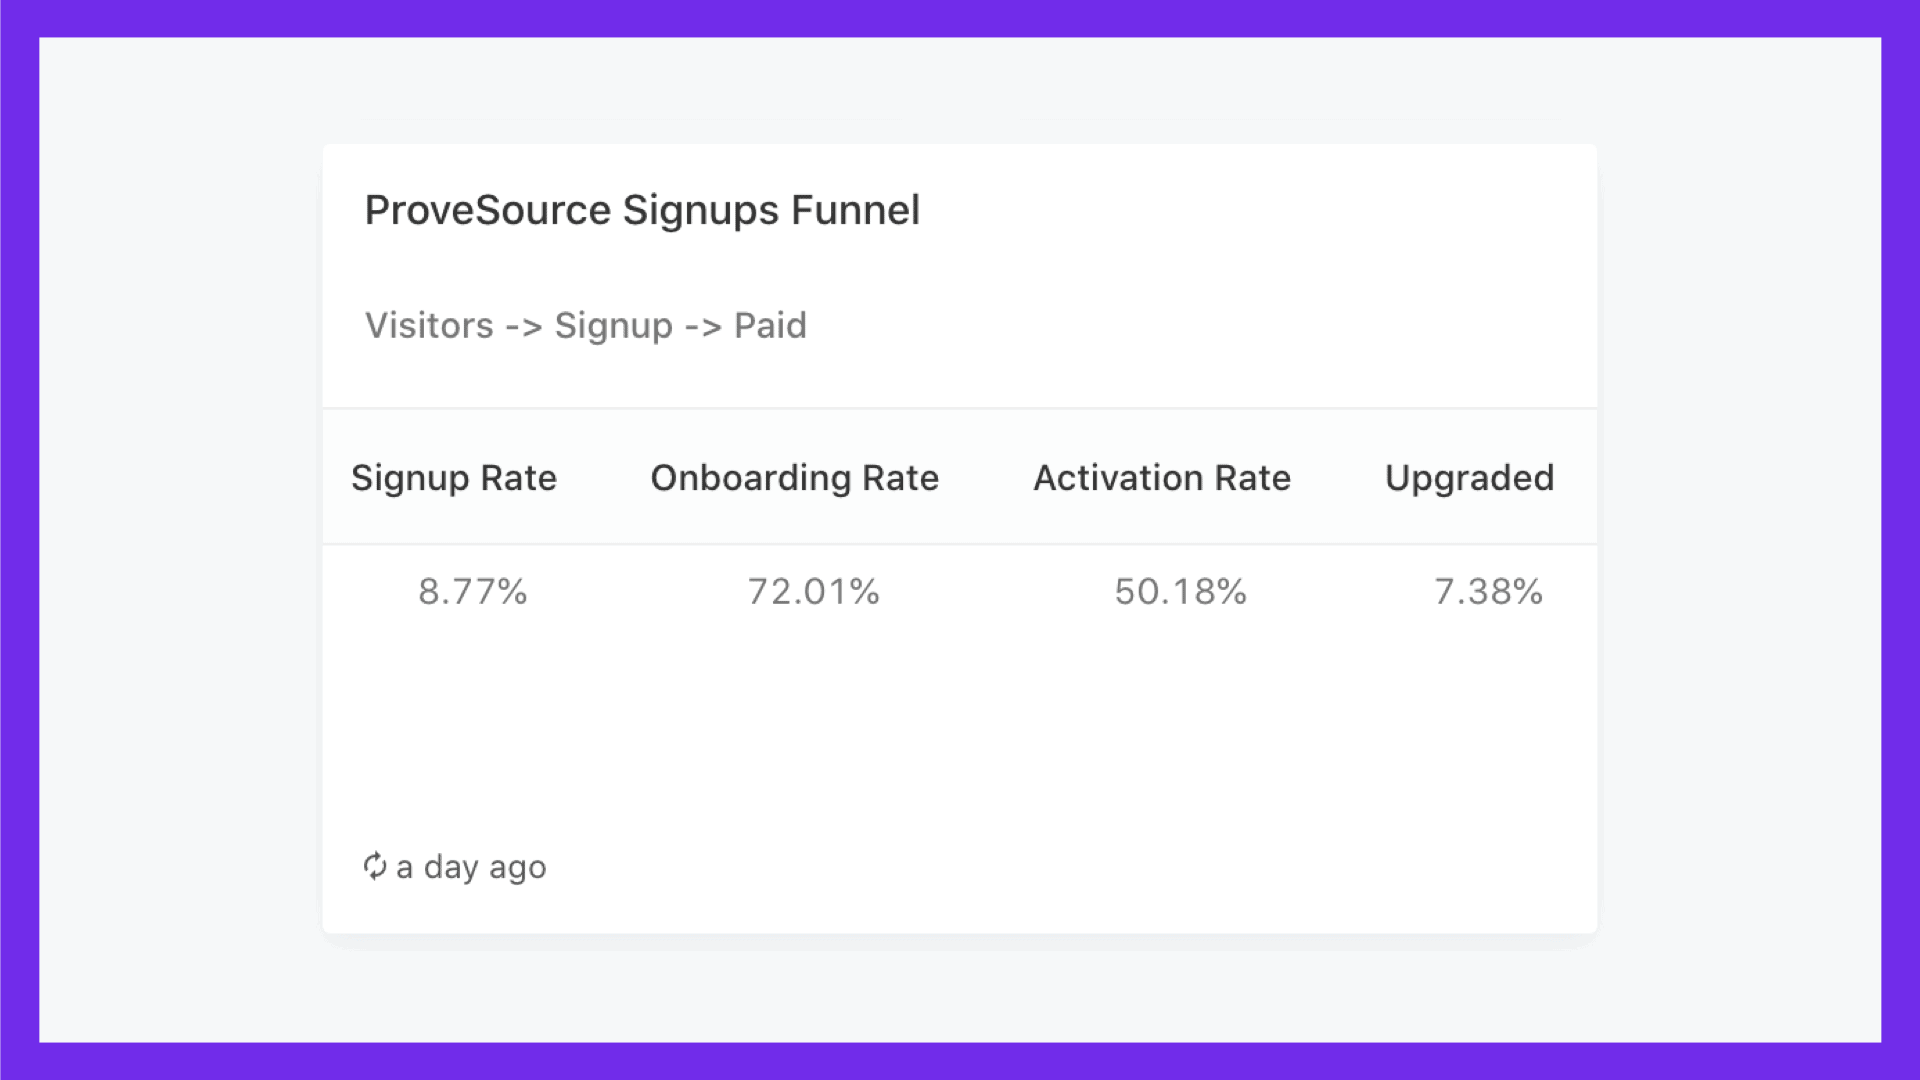 ProveSource Signups Funnel